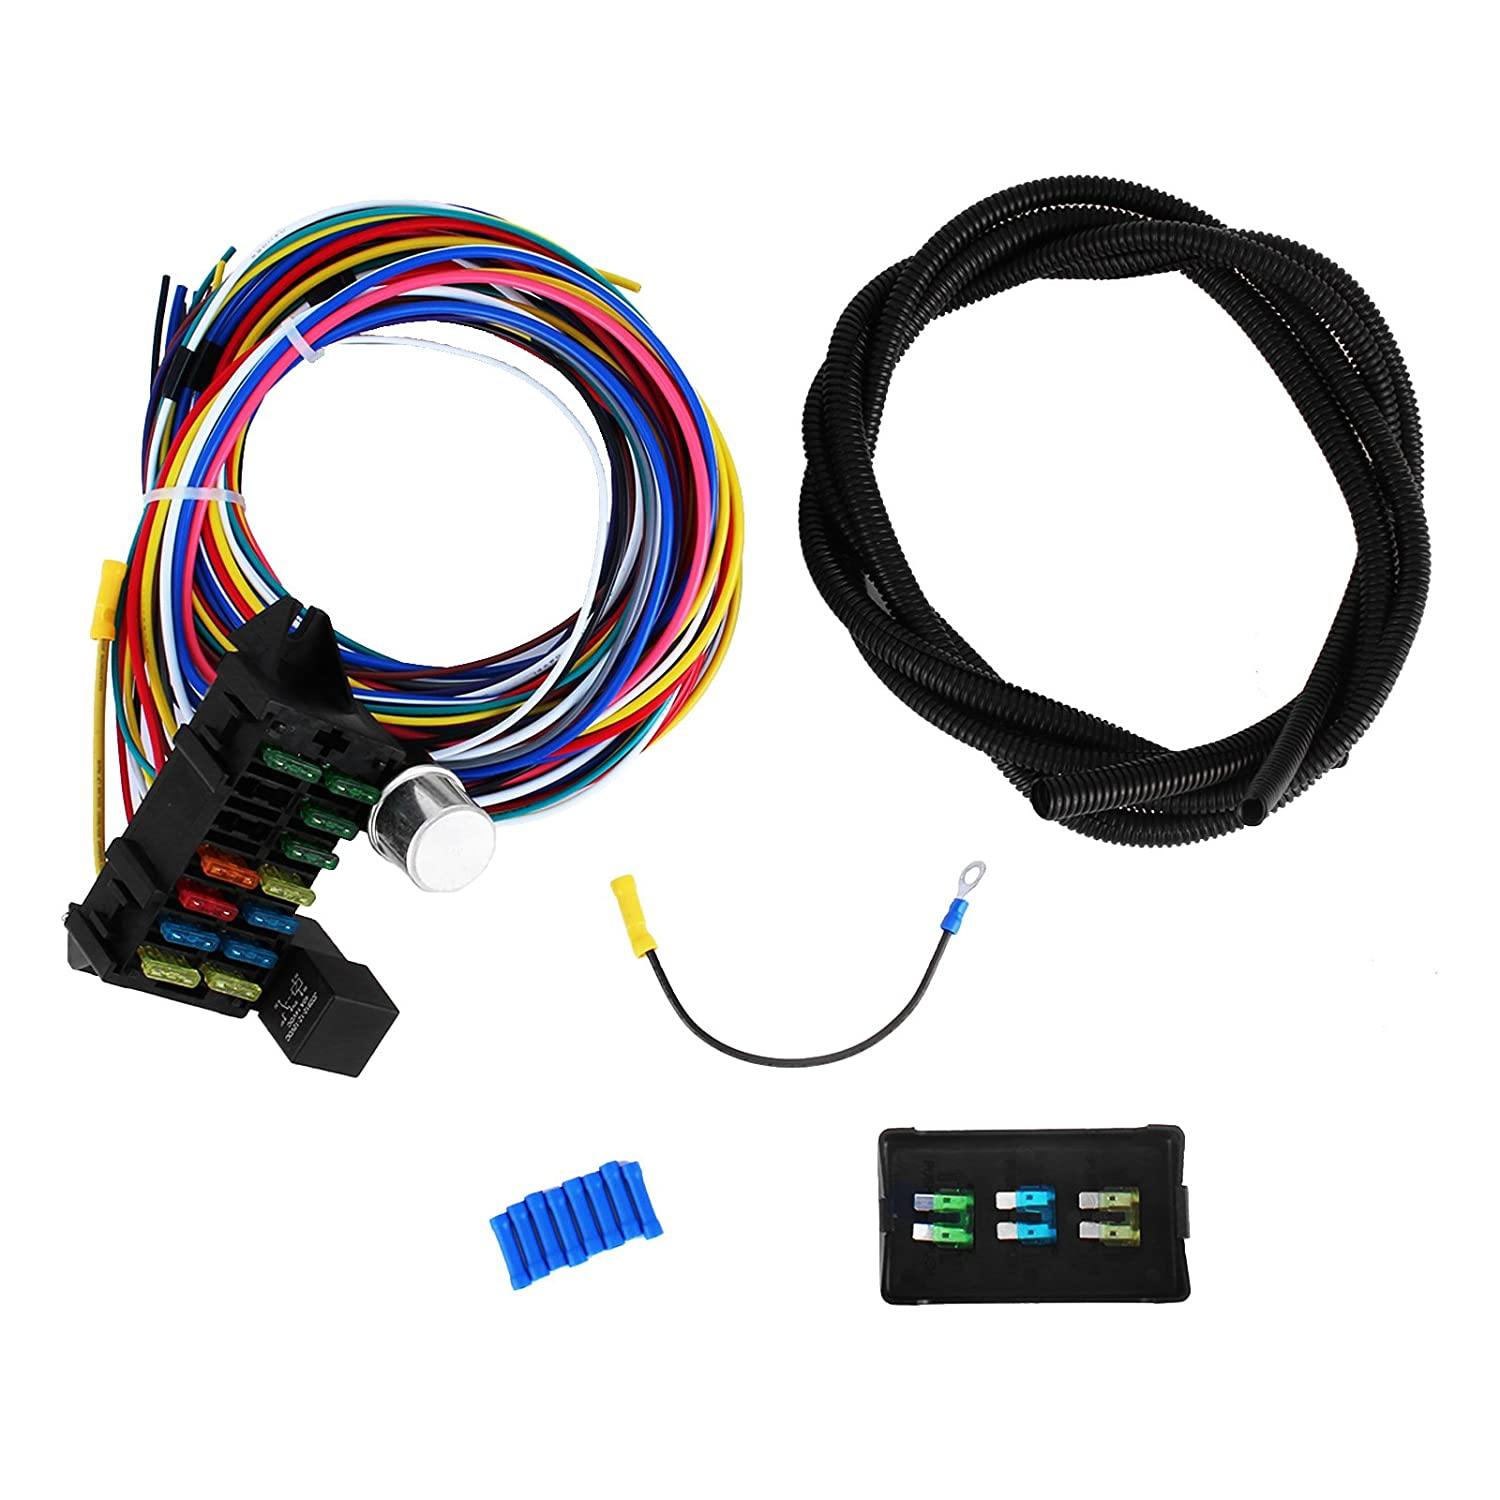 Tremendous Amazon Com Mophorn 12 Circuit Wiring Harness 12 Fuses Universal Wiring Cloud Staixuggs Outletorg